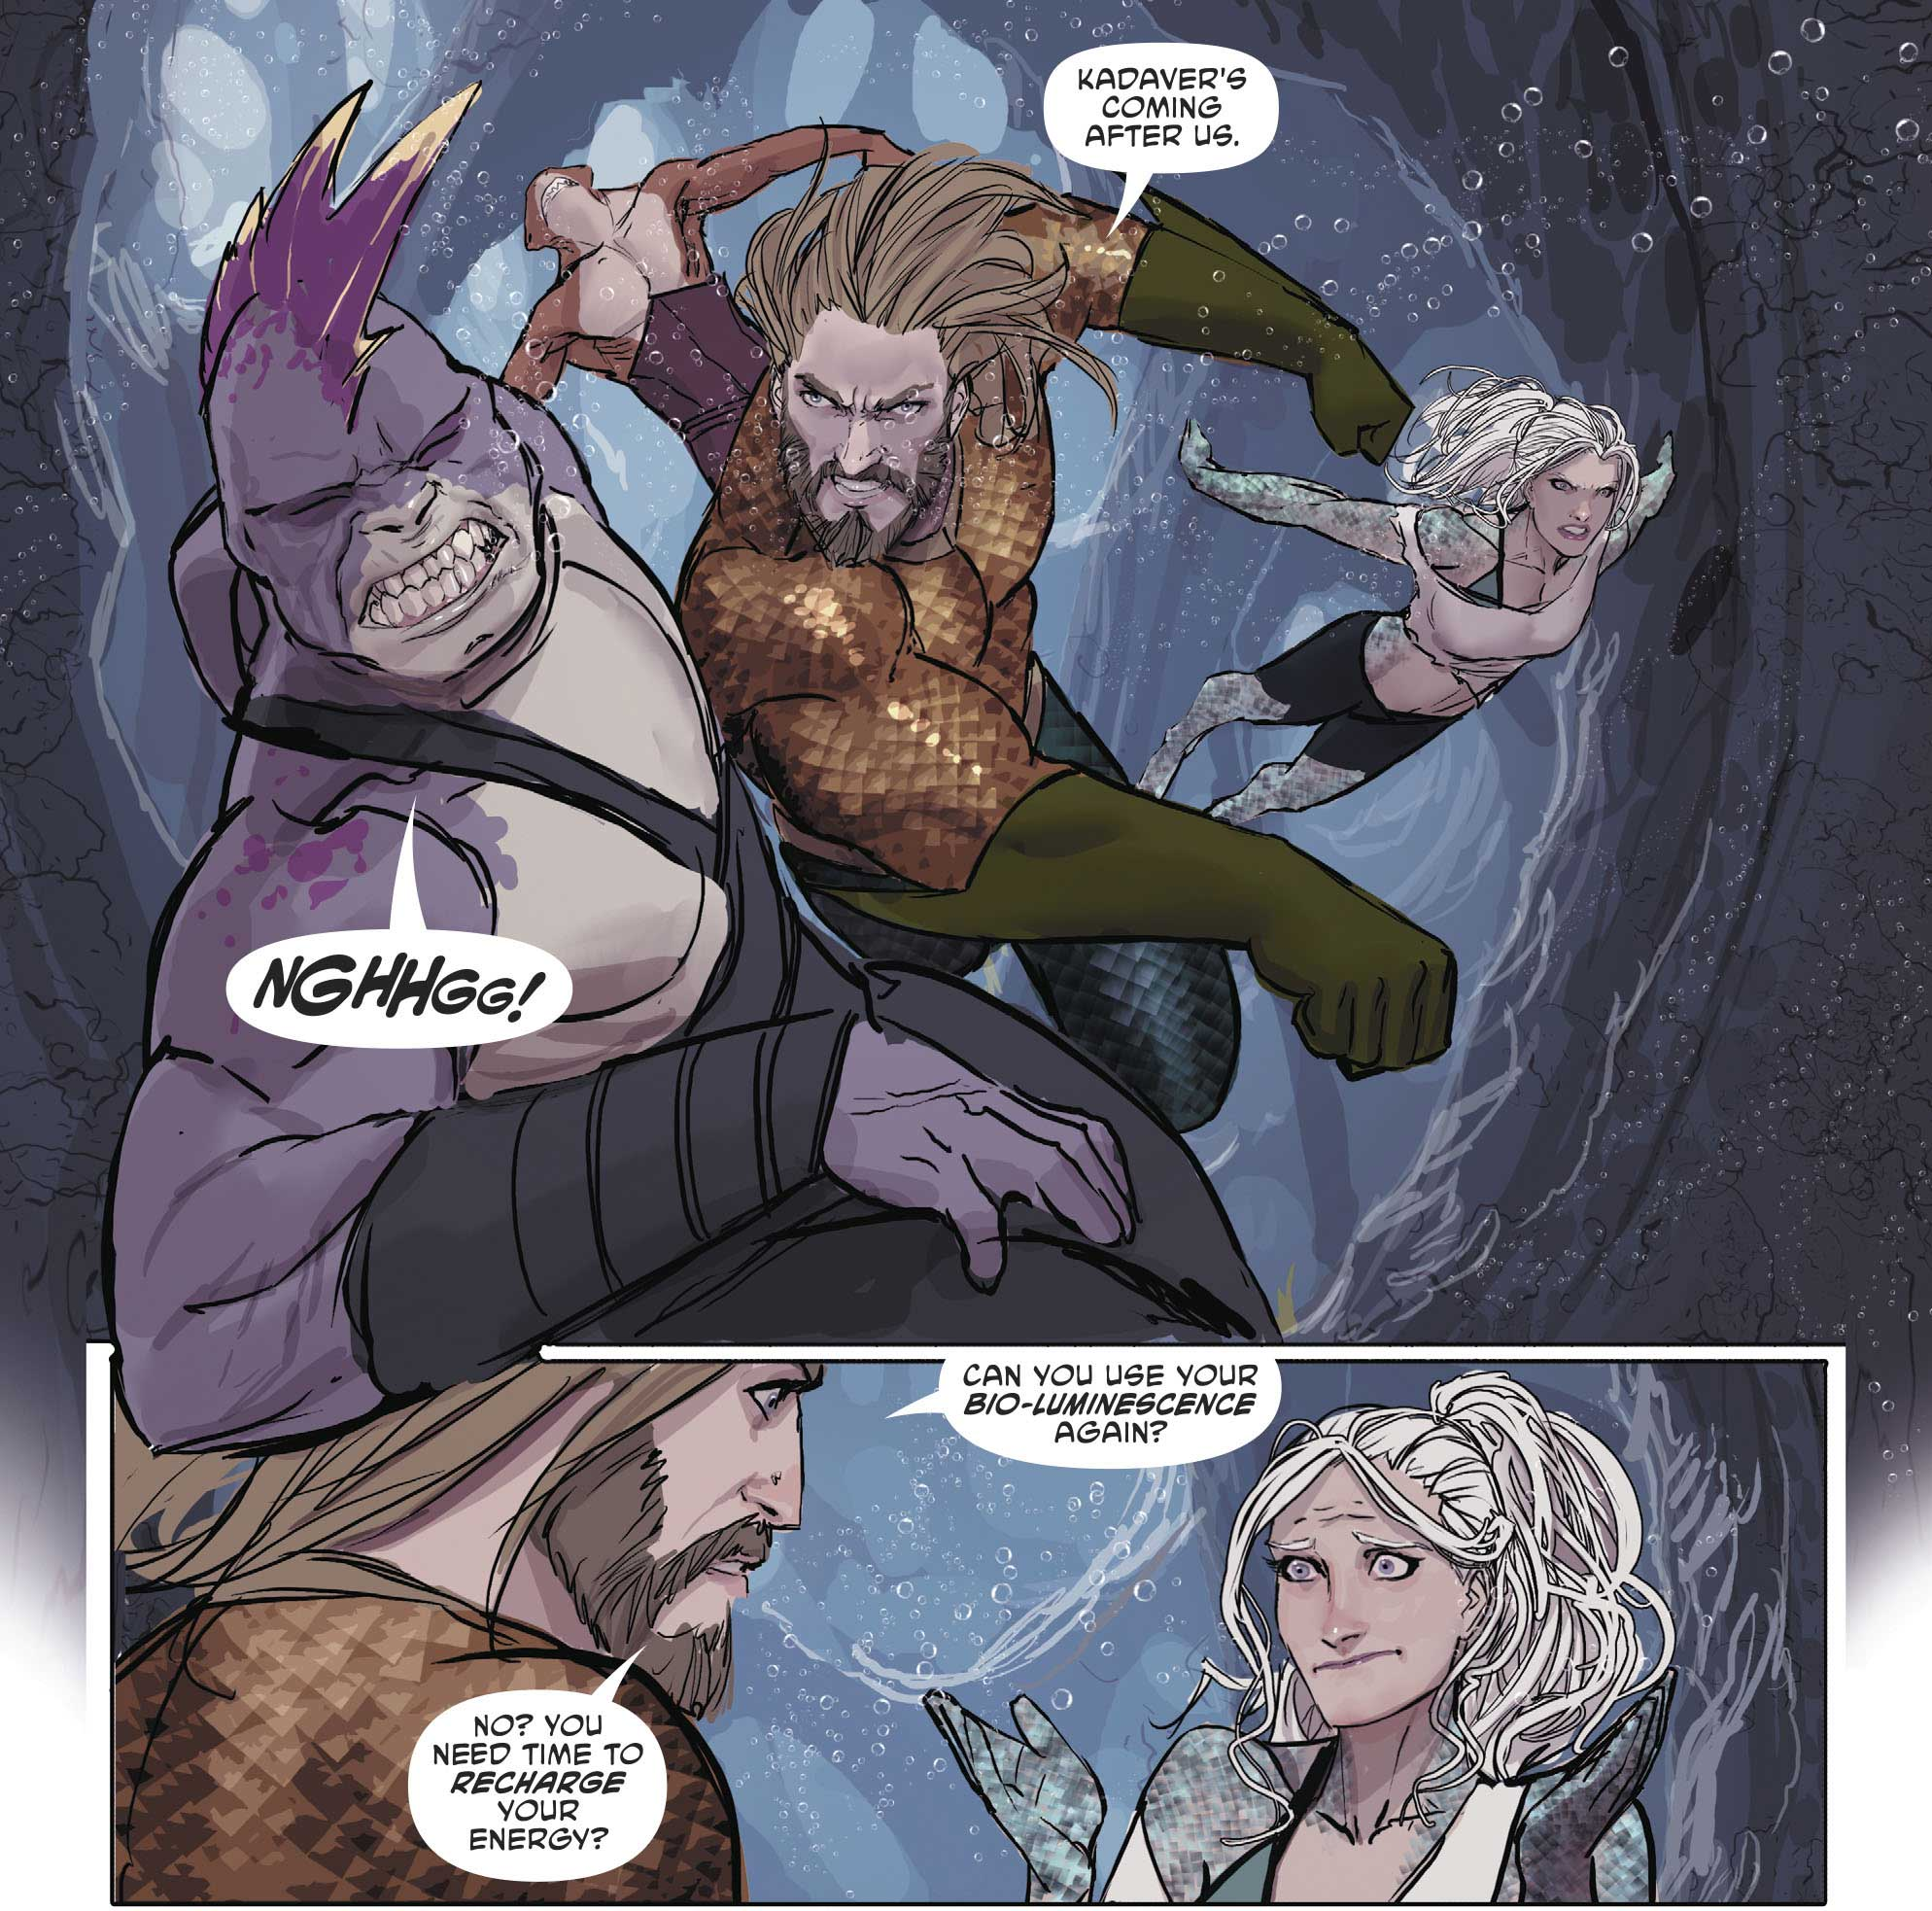 Aquaman featuring Dolphin by Stjepan Sejic